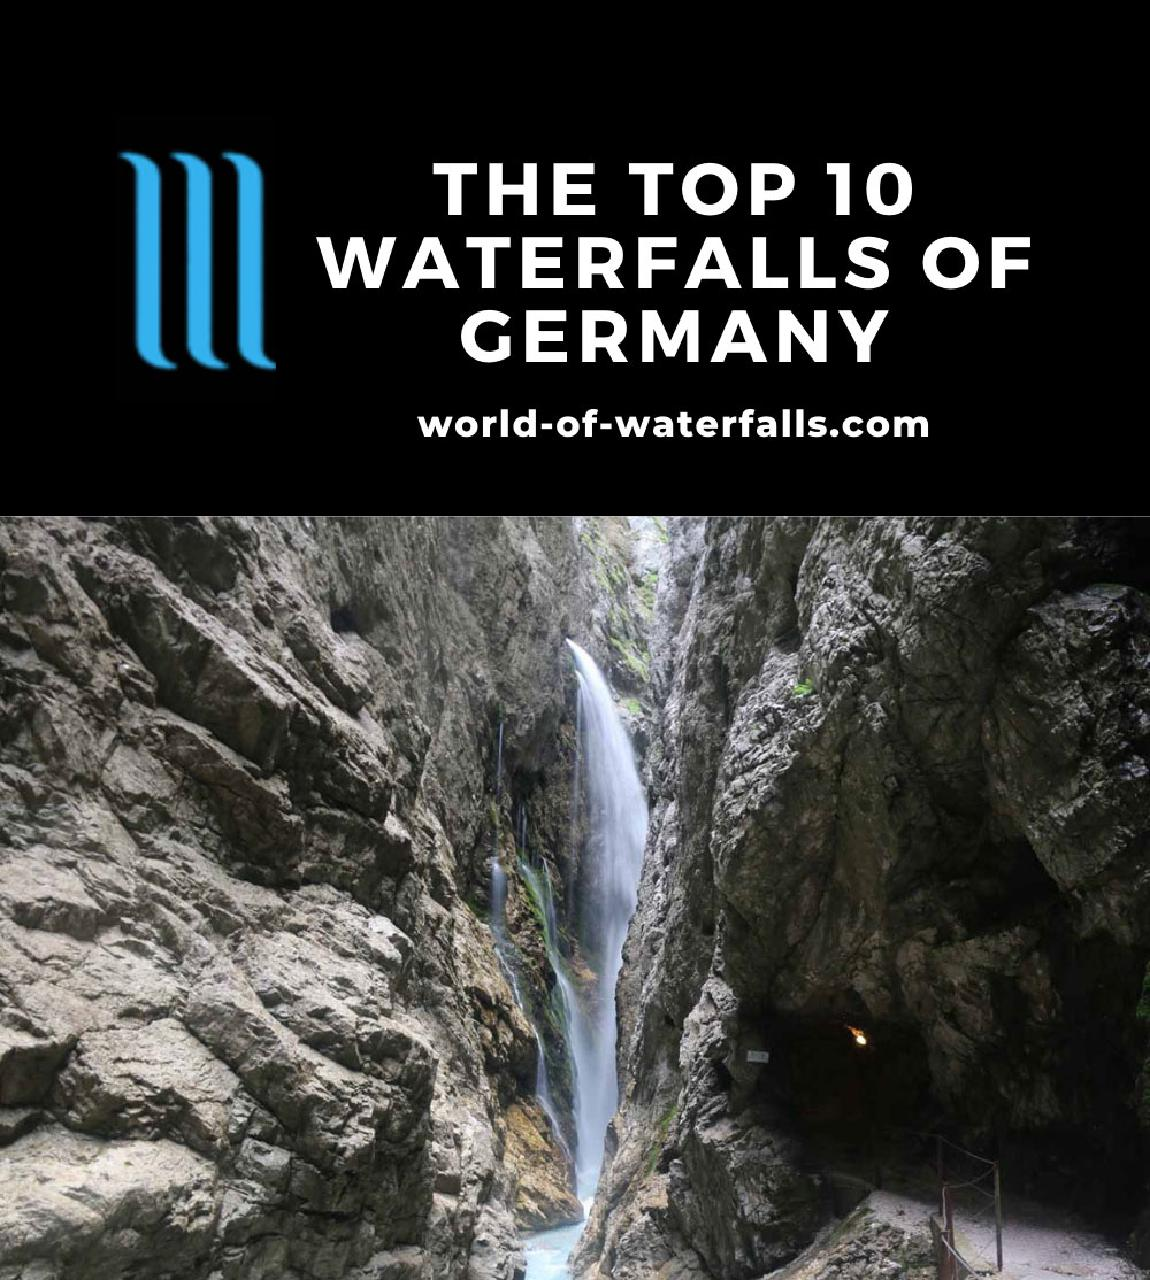 The Top 10 Waterfalls of Germany